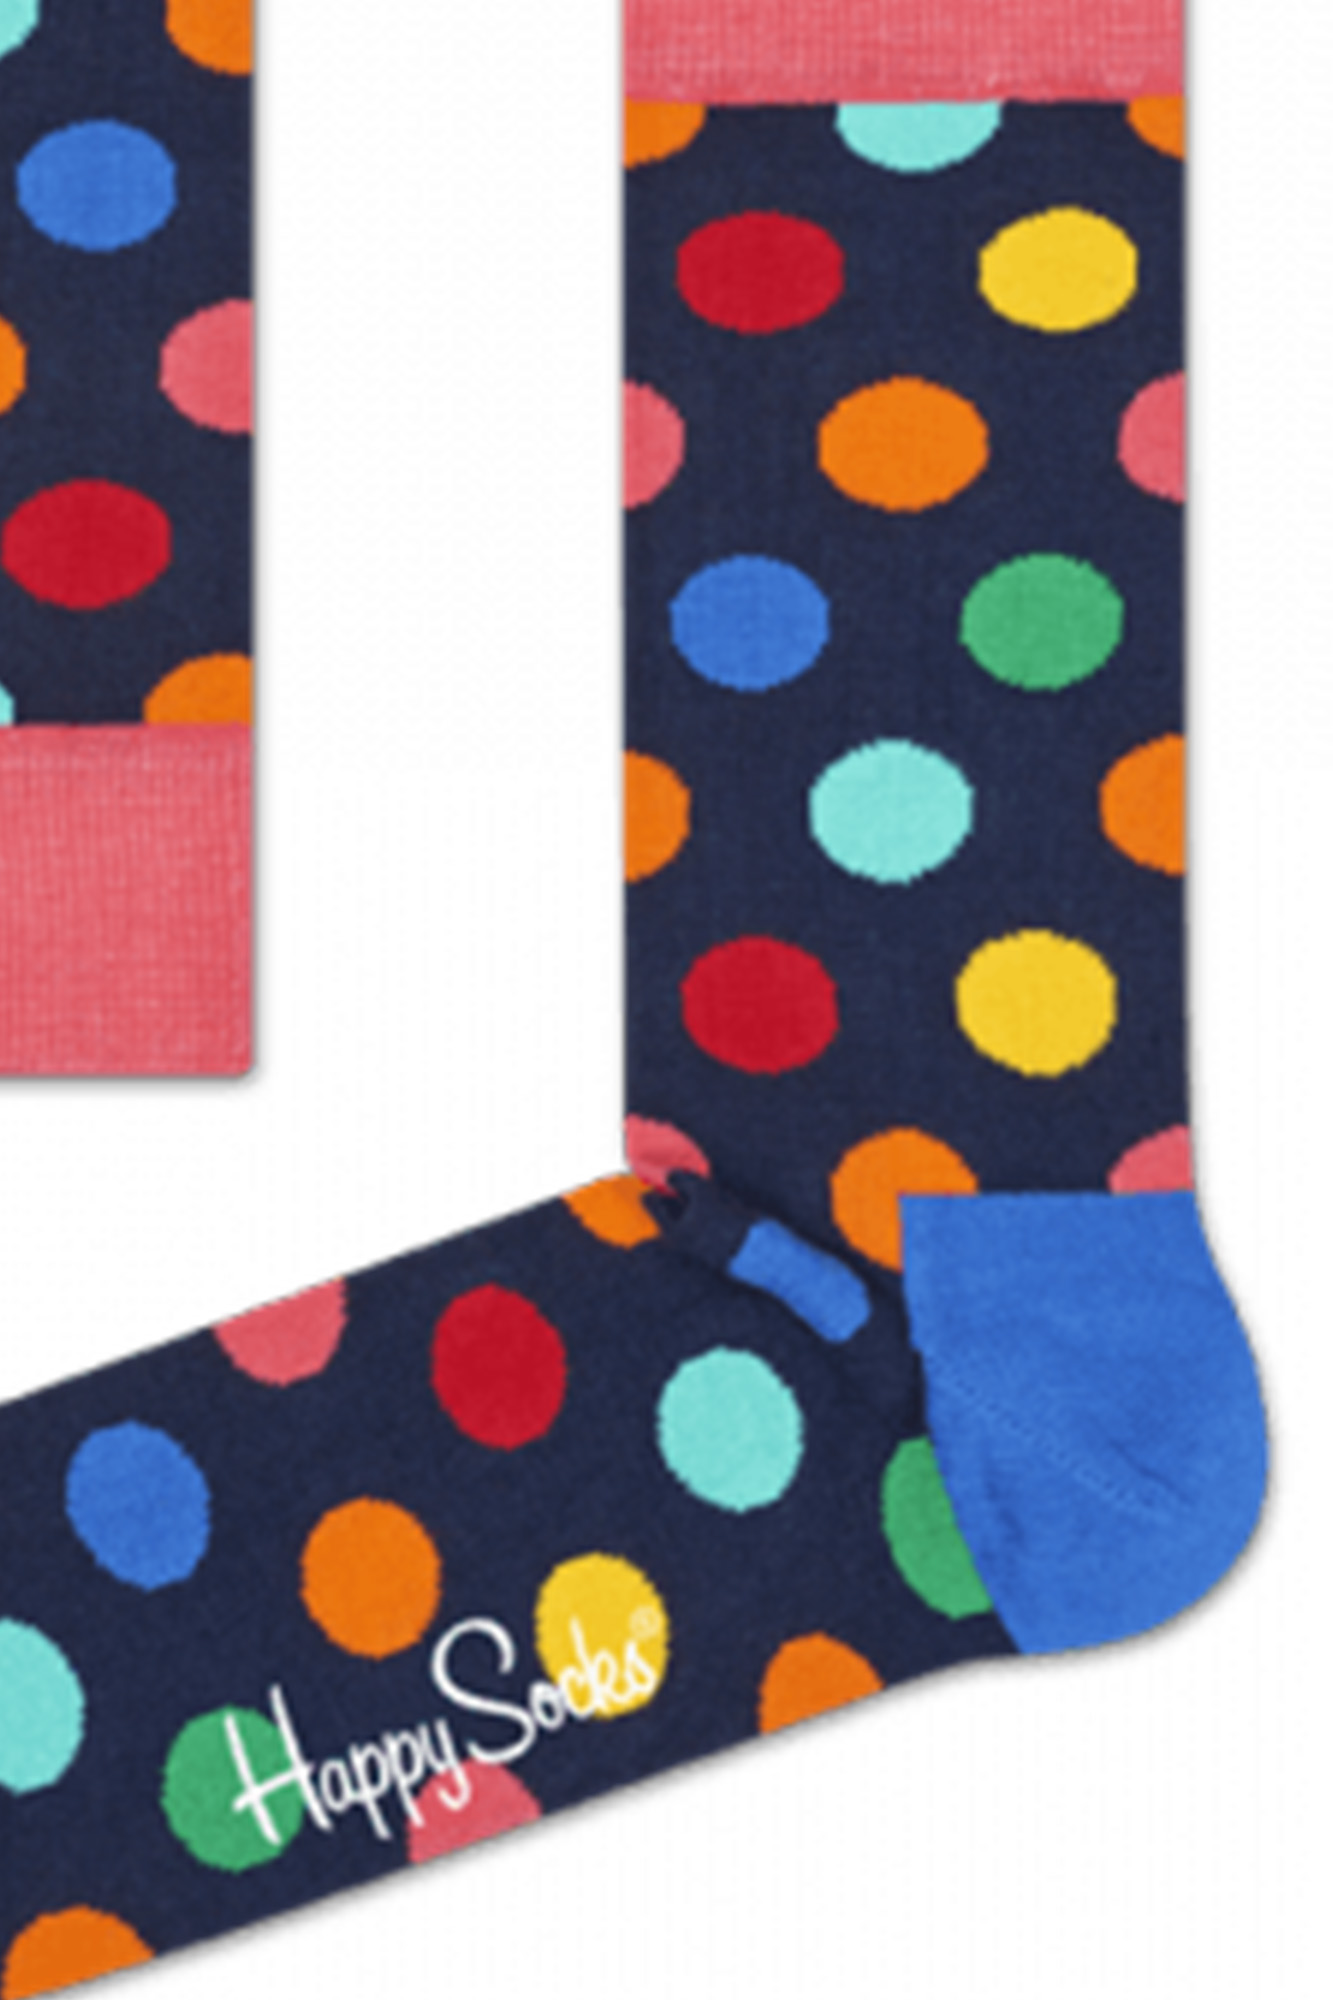 Happy Socks - Calze Big Dot Colorate Unisex